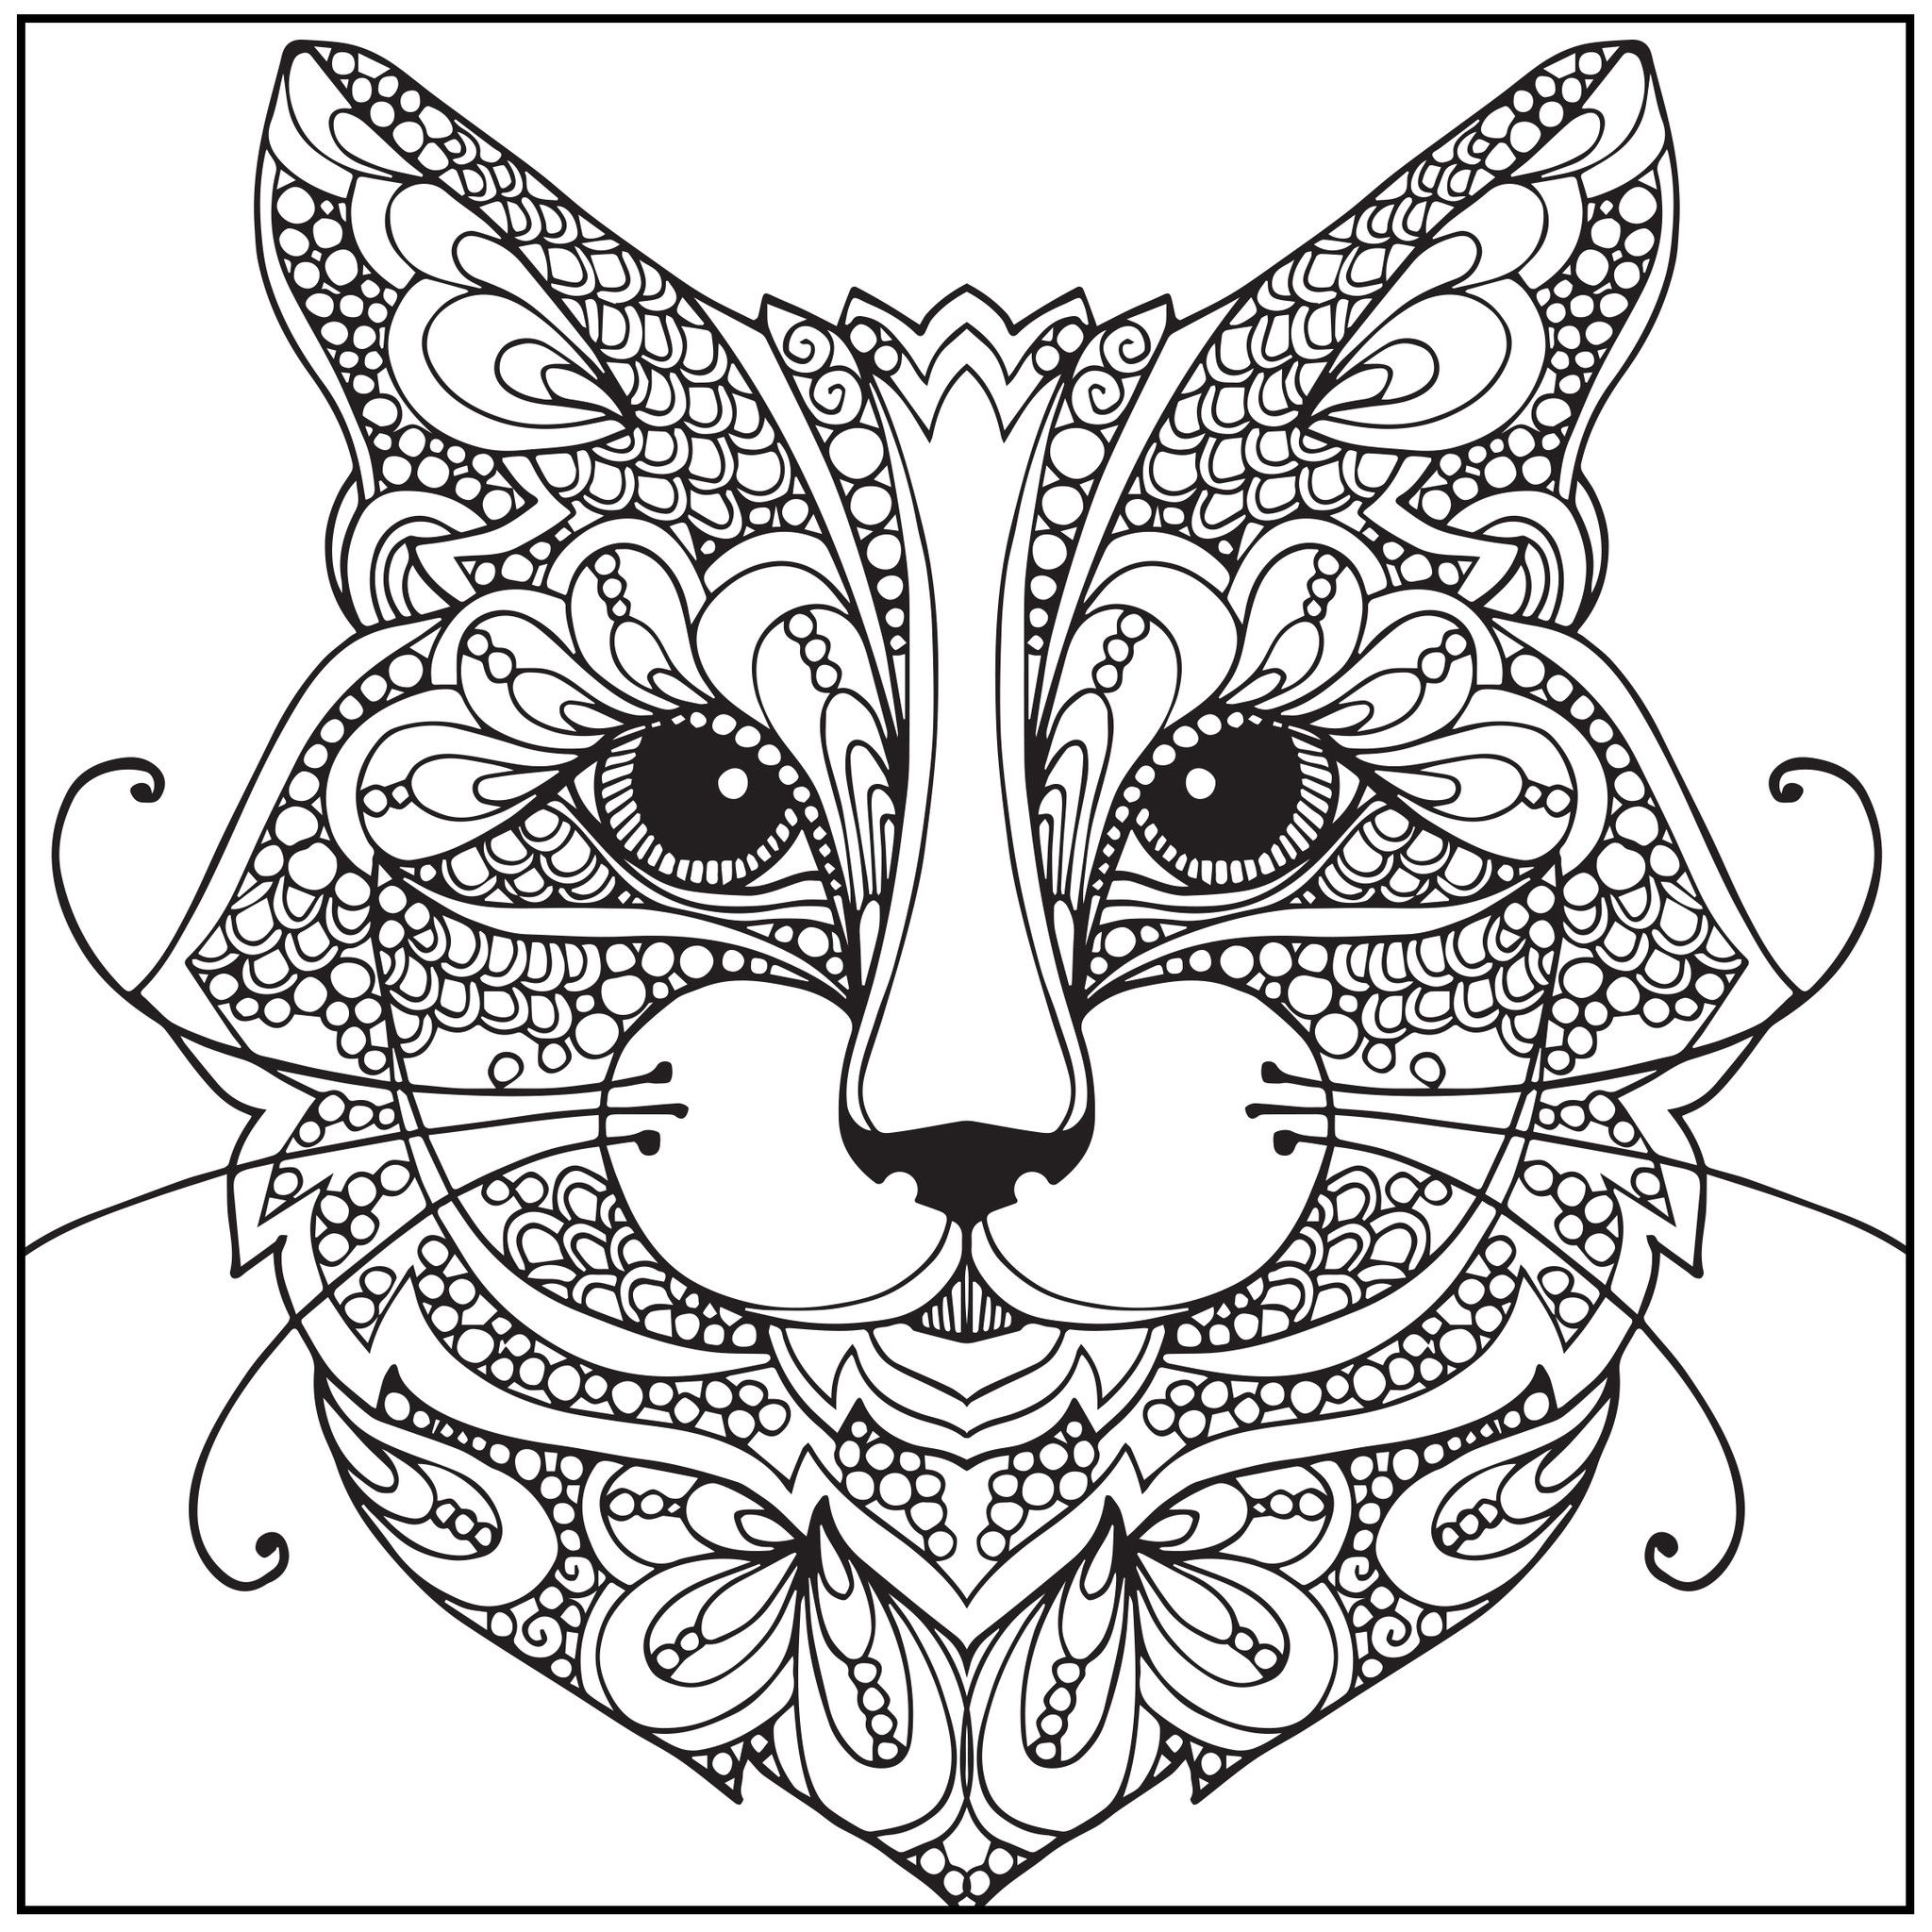 Stress relief coloring sheets free - Impressive Inspiration Cat Coloring Pages For Adults Cat Coloring Pages For Adults With Cat Coloring Pages For Adults